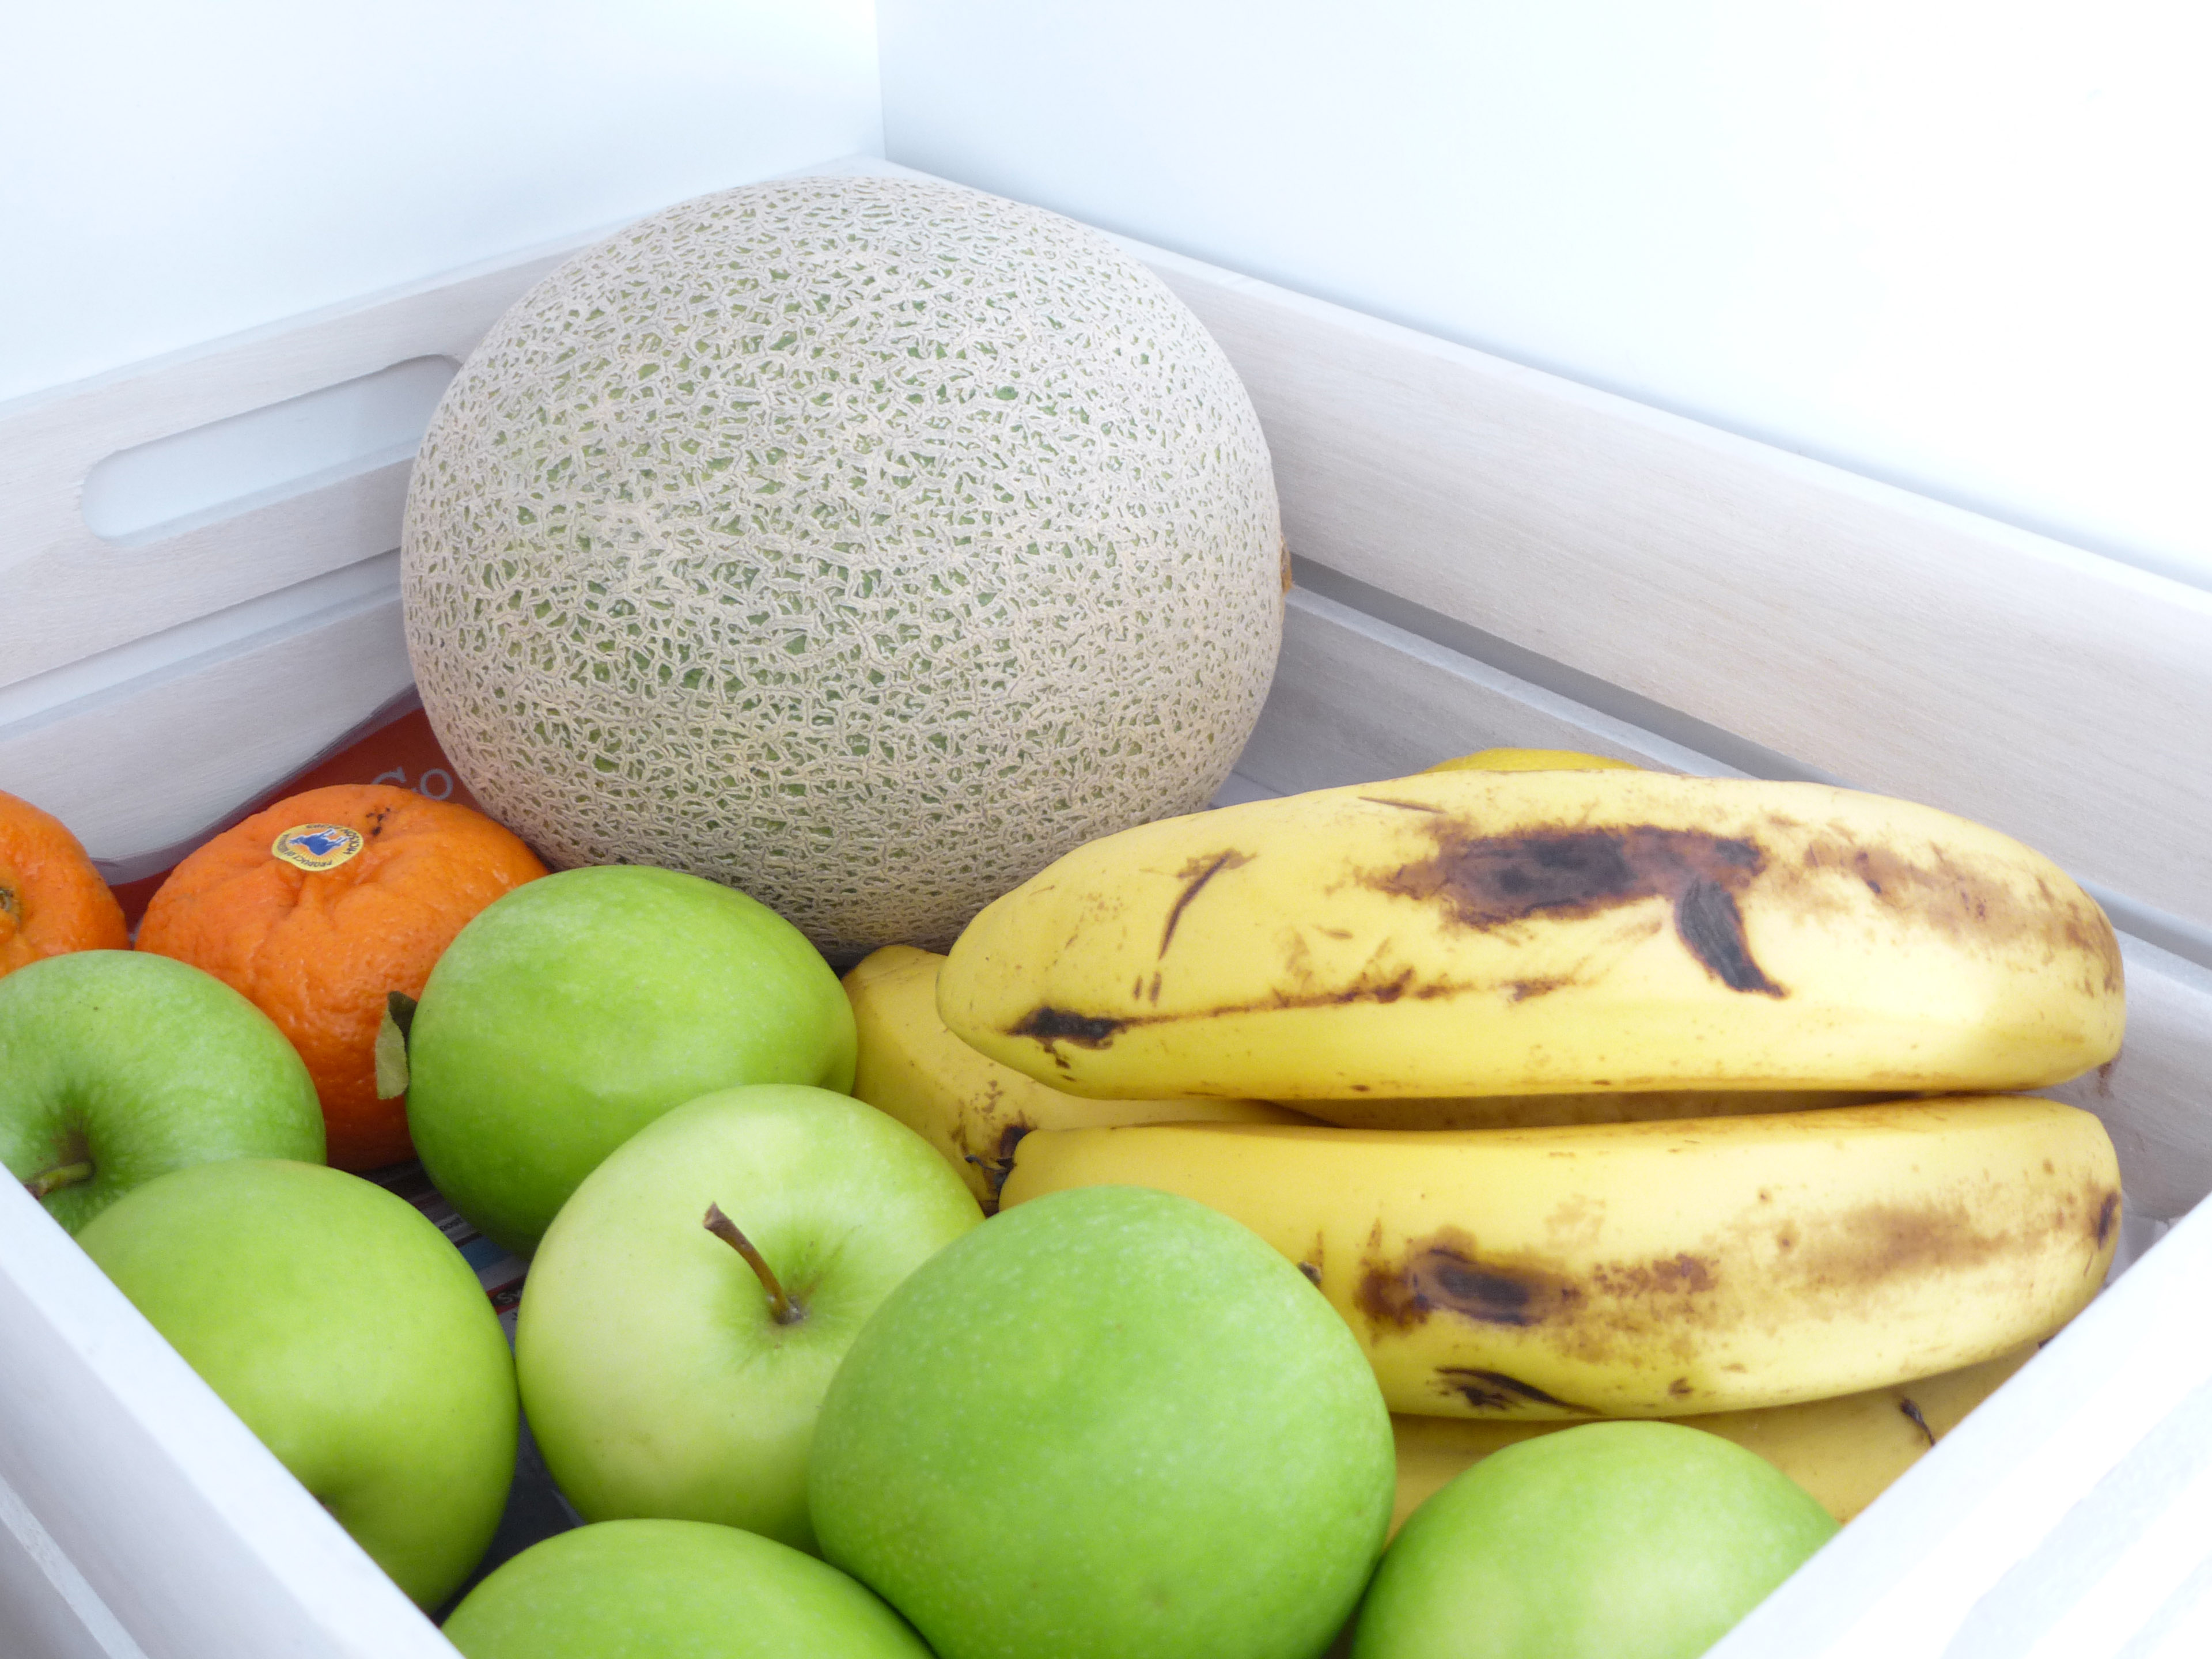 A wooden market crate filled with vibrant healthy fruits including apples, bananas, oranges and rock melon.